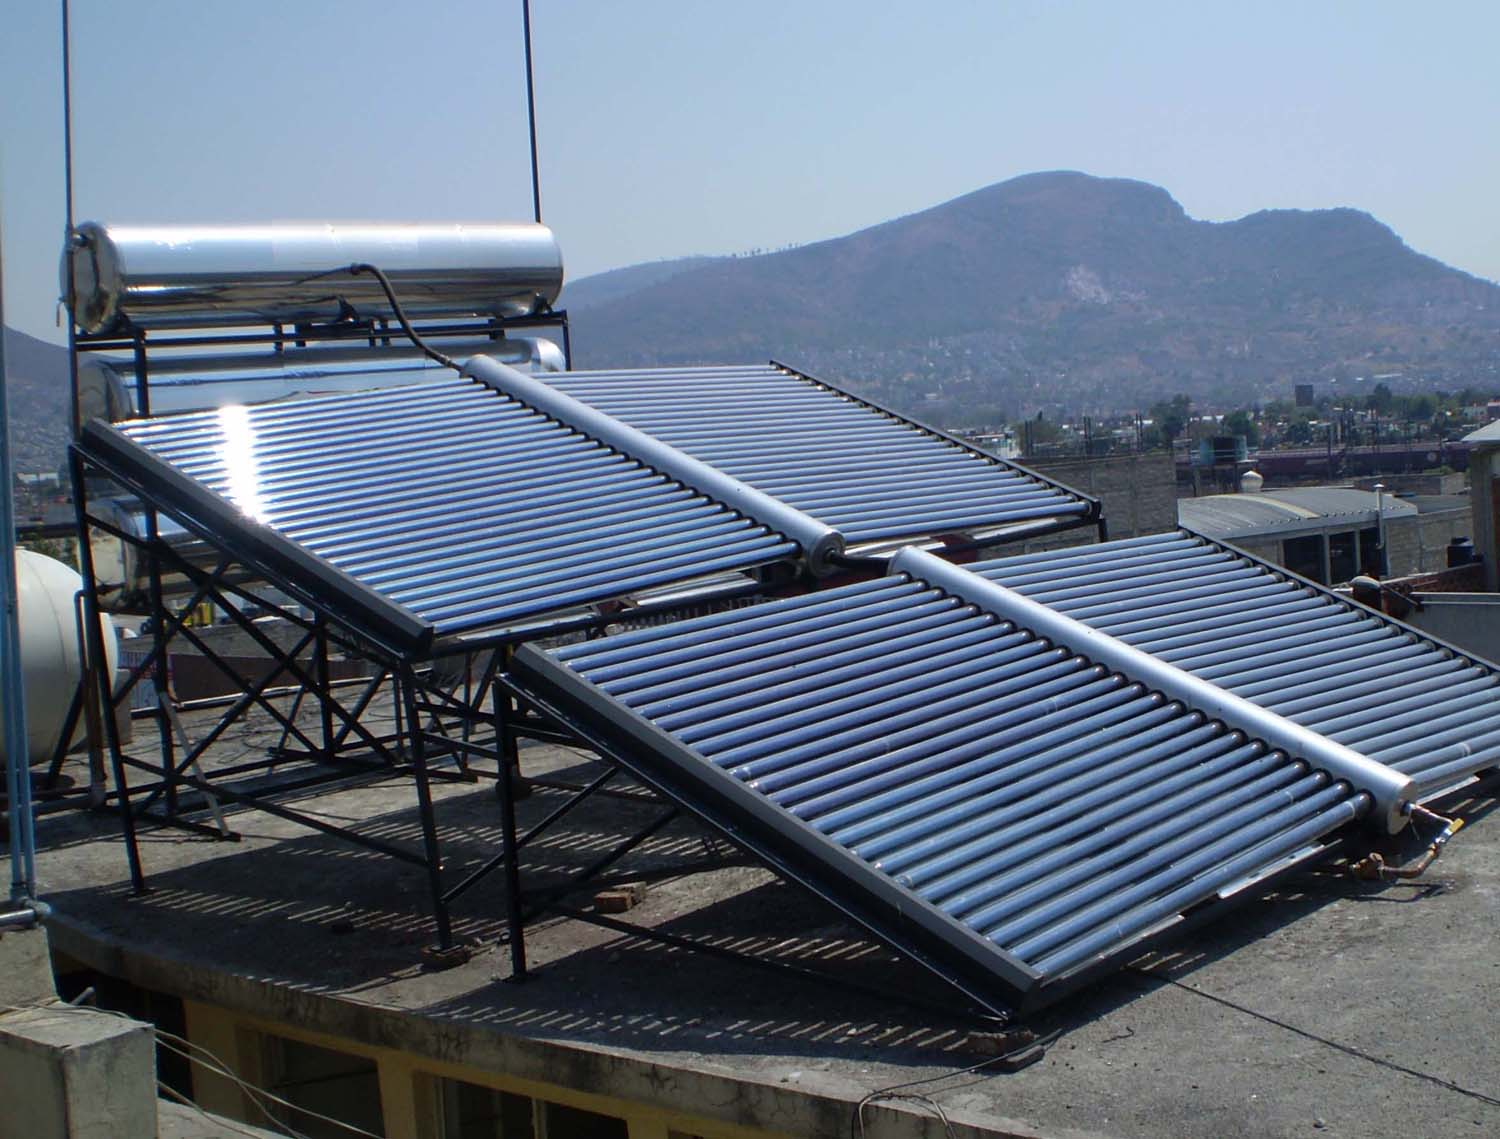 Will Solar Heaters Explode During This Period Of Drought